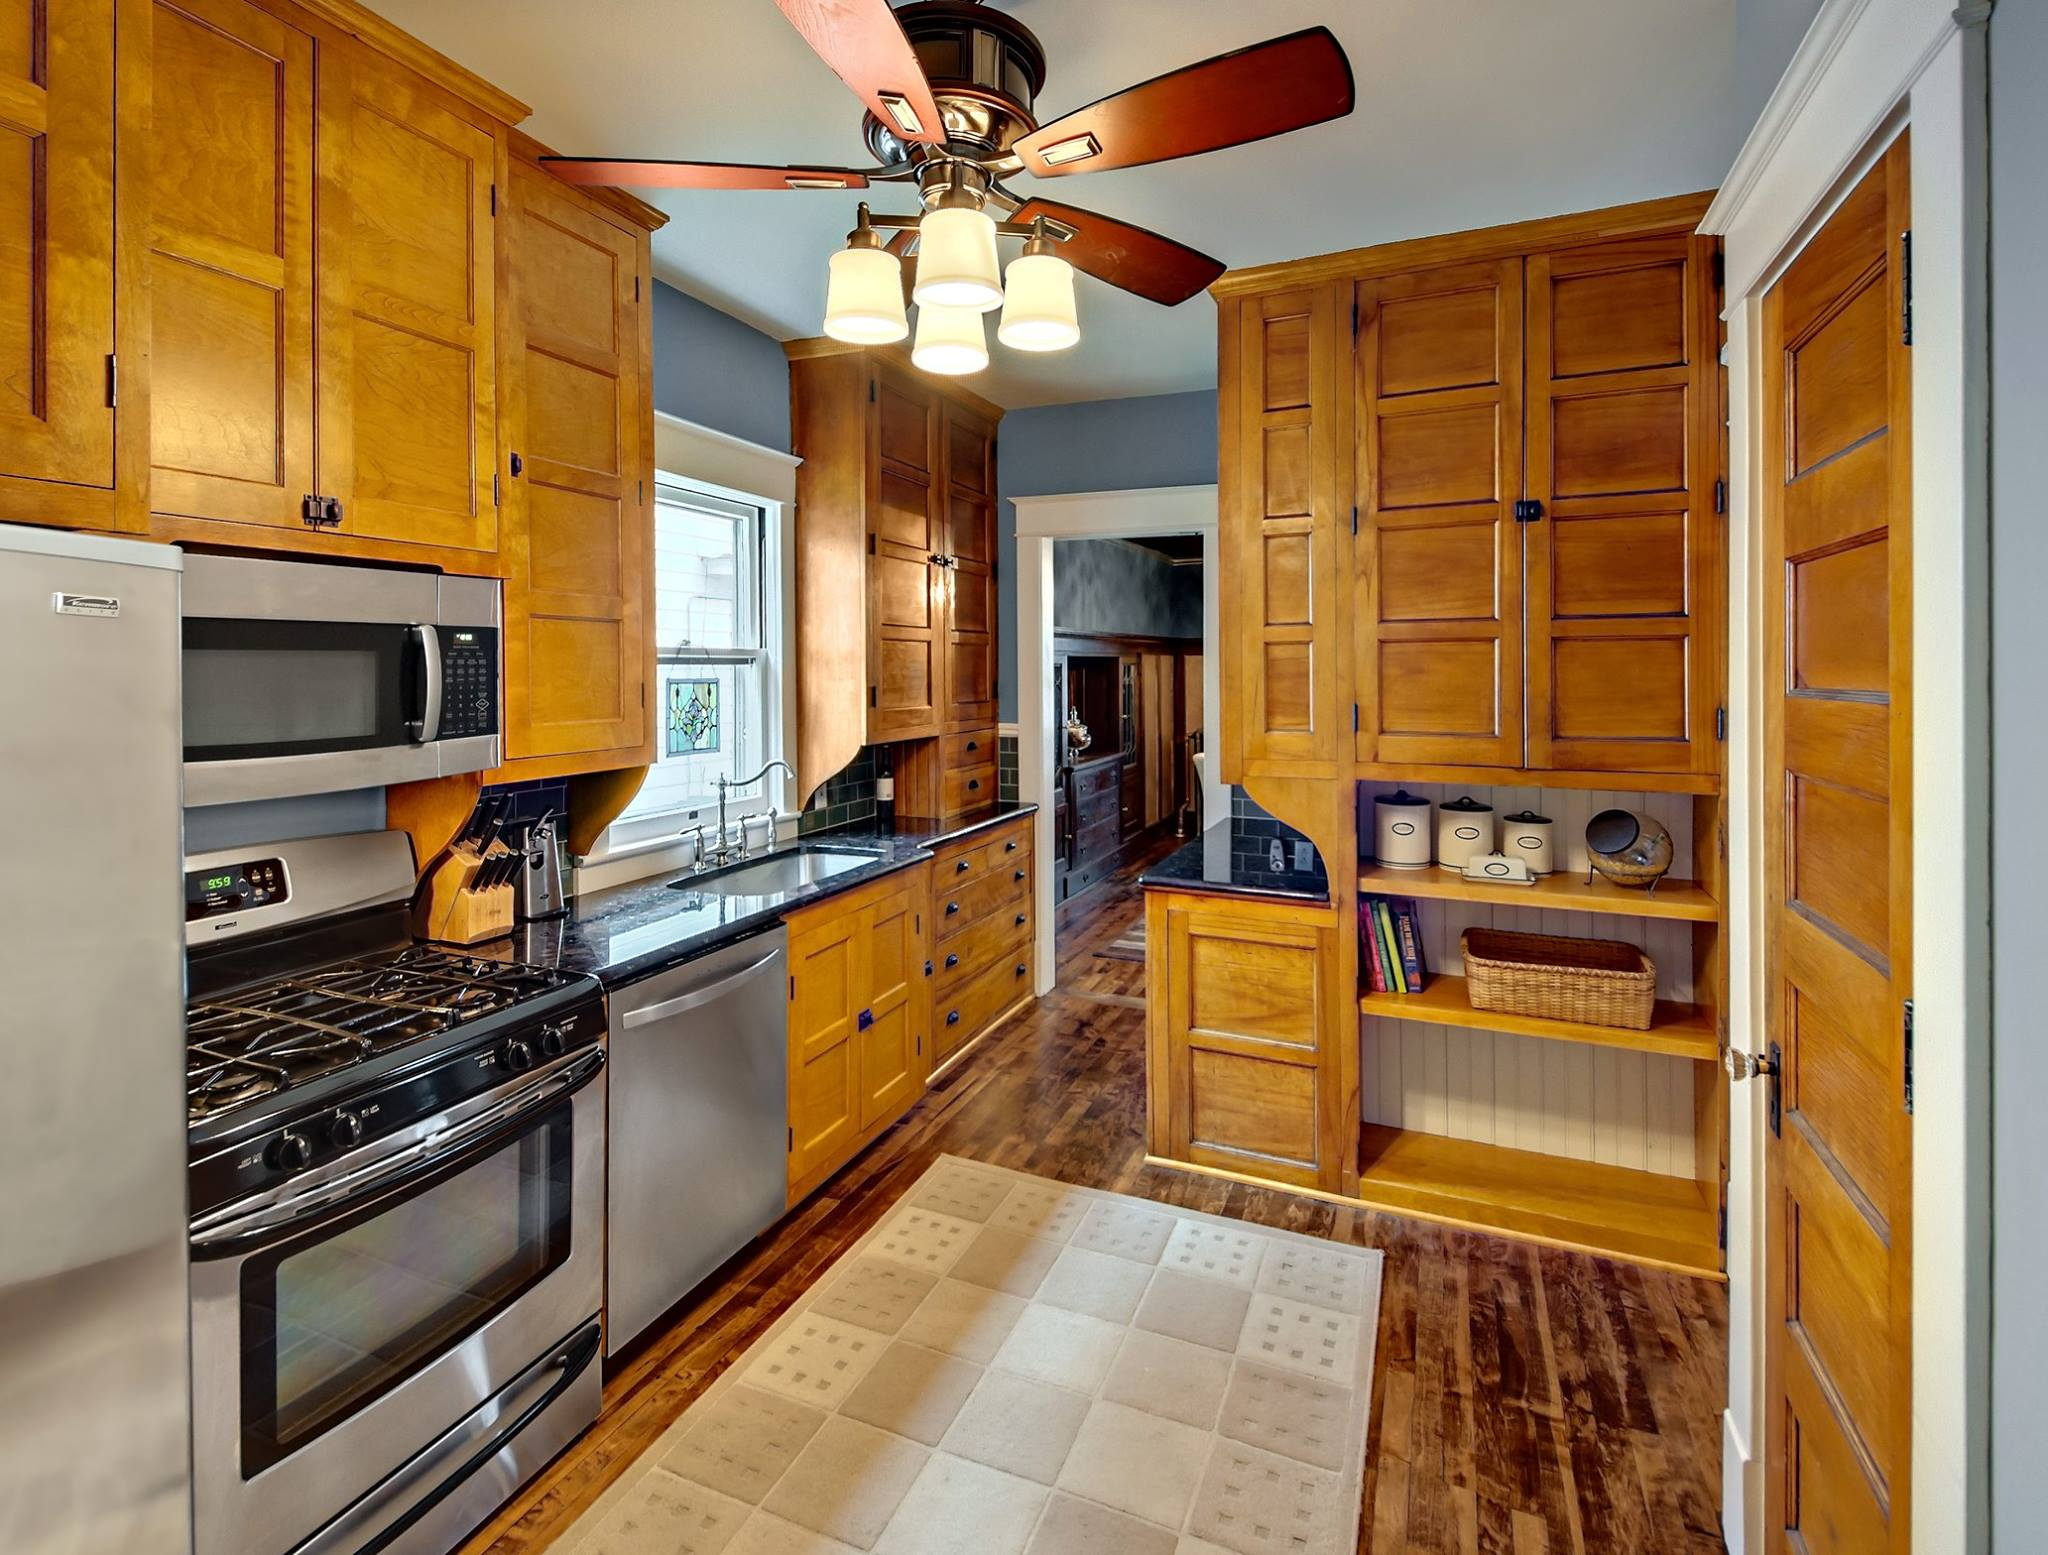 Gorgeous Kitchen Renovation In Potomac Maryland: Small Kitchens That Cook